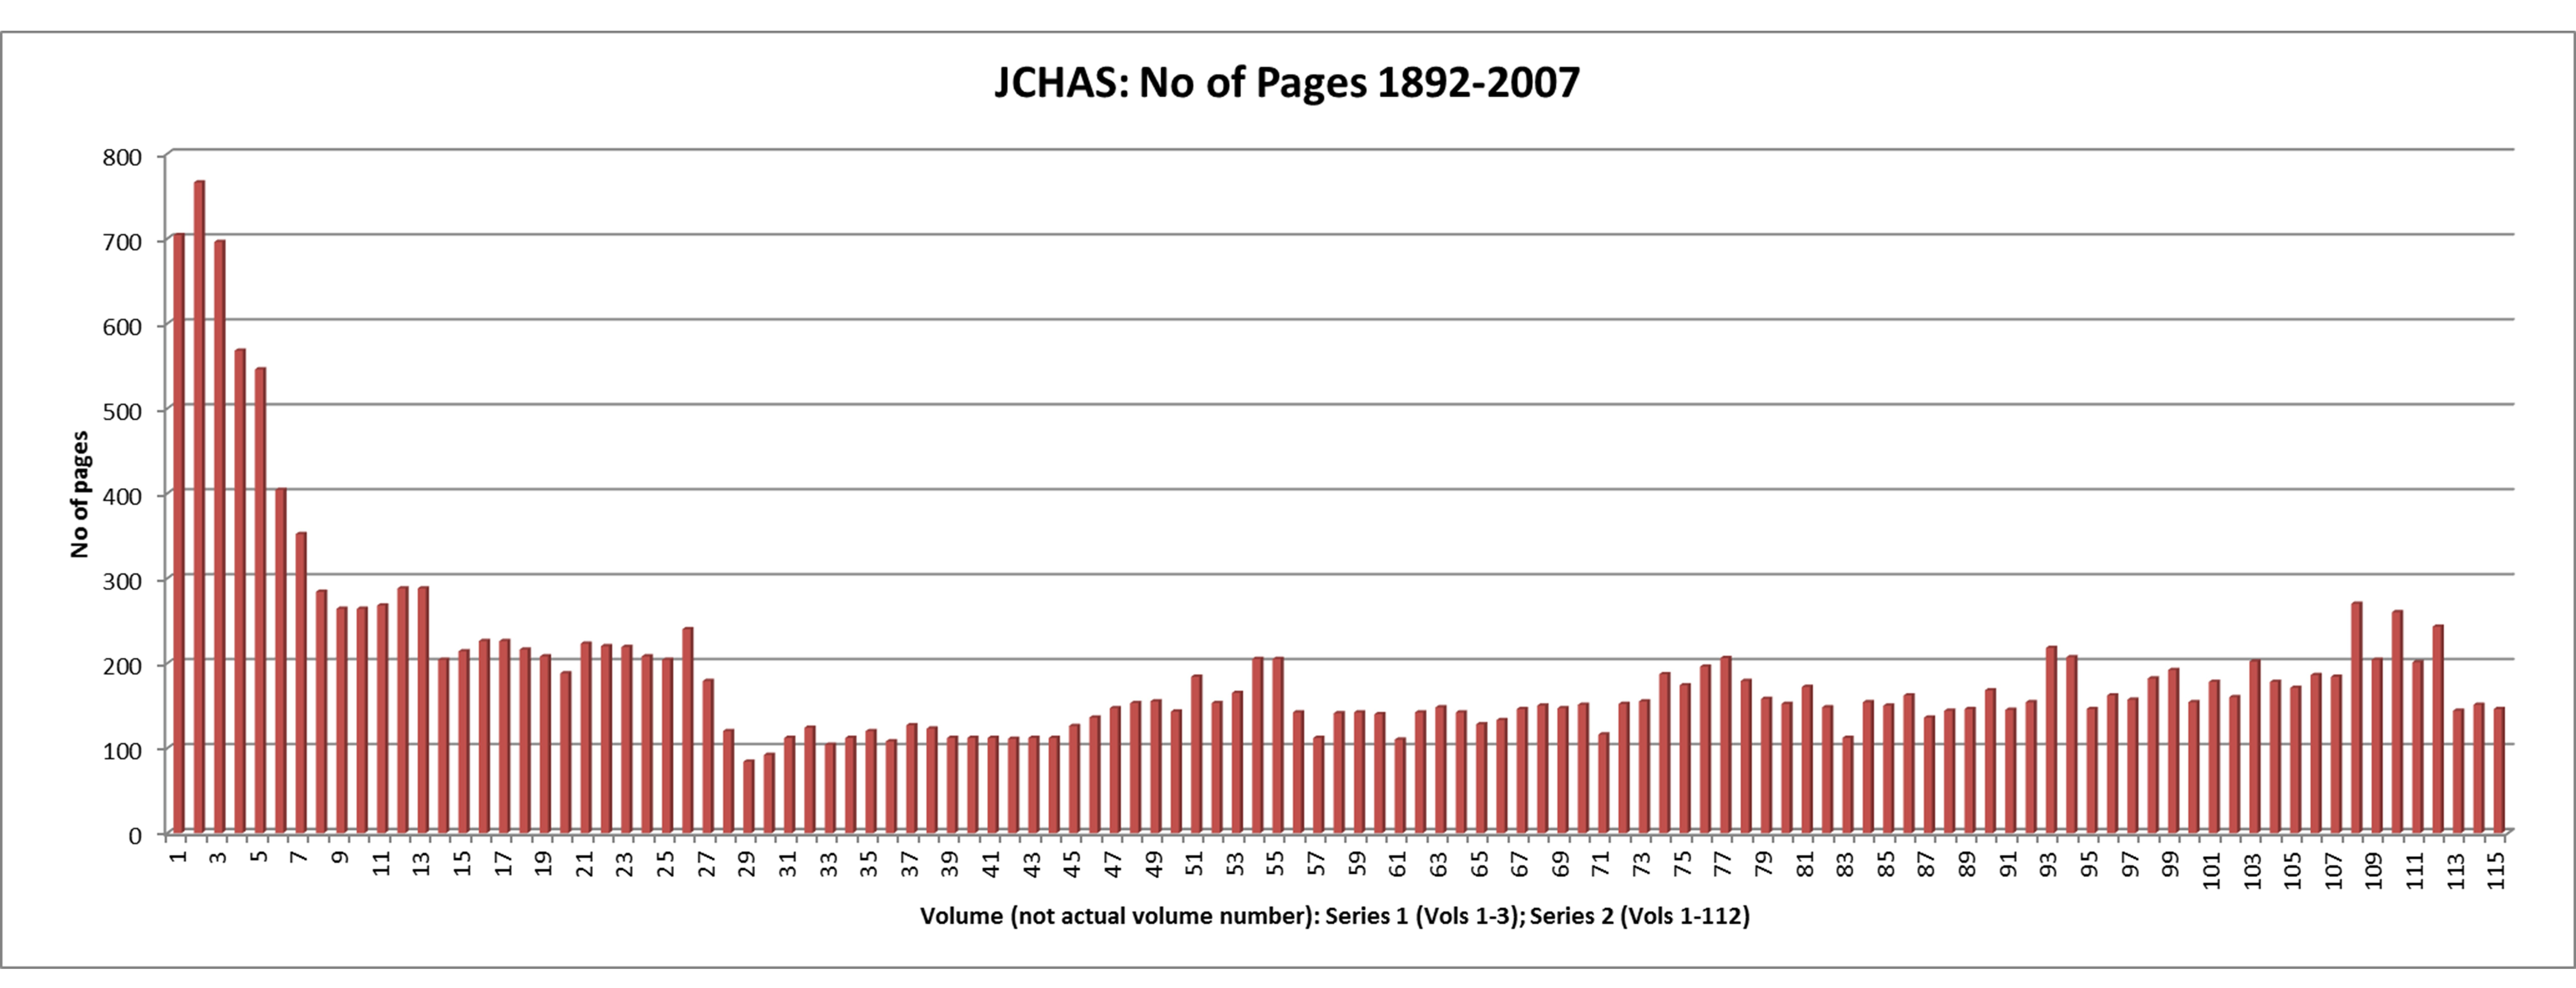 Pages per volume in JCHAS 1892-2007